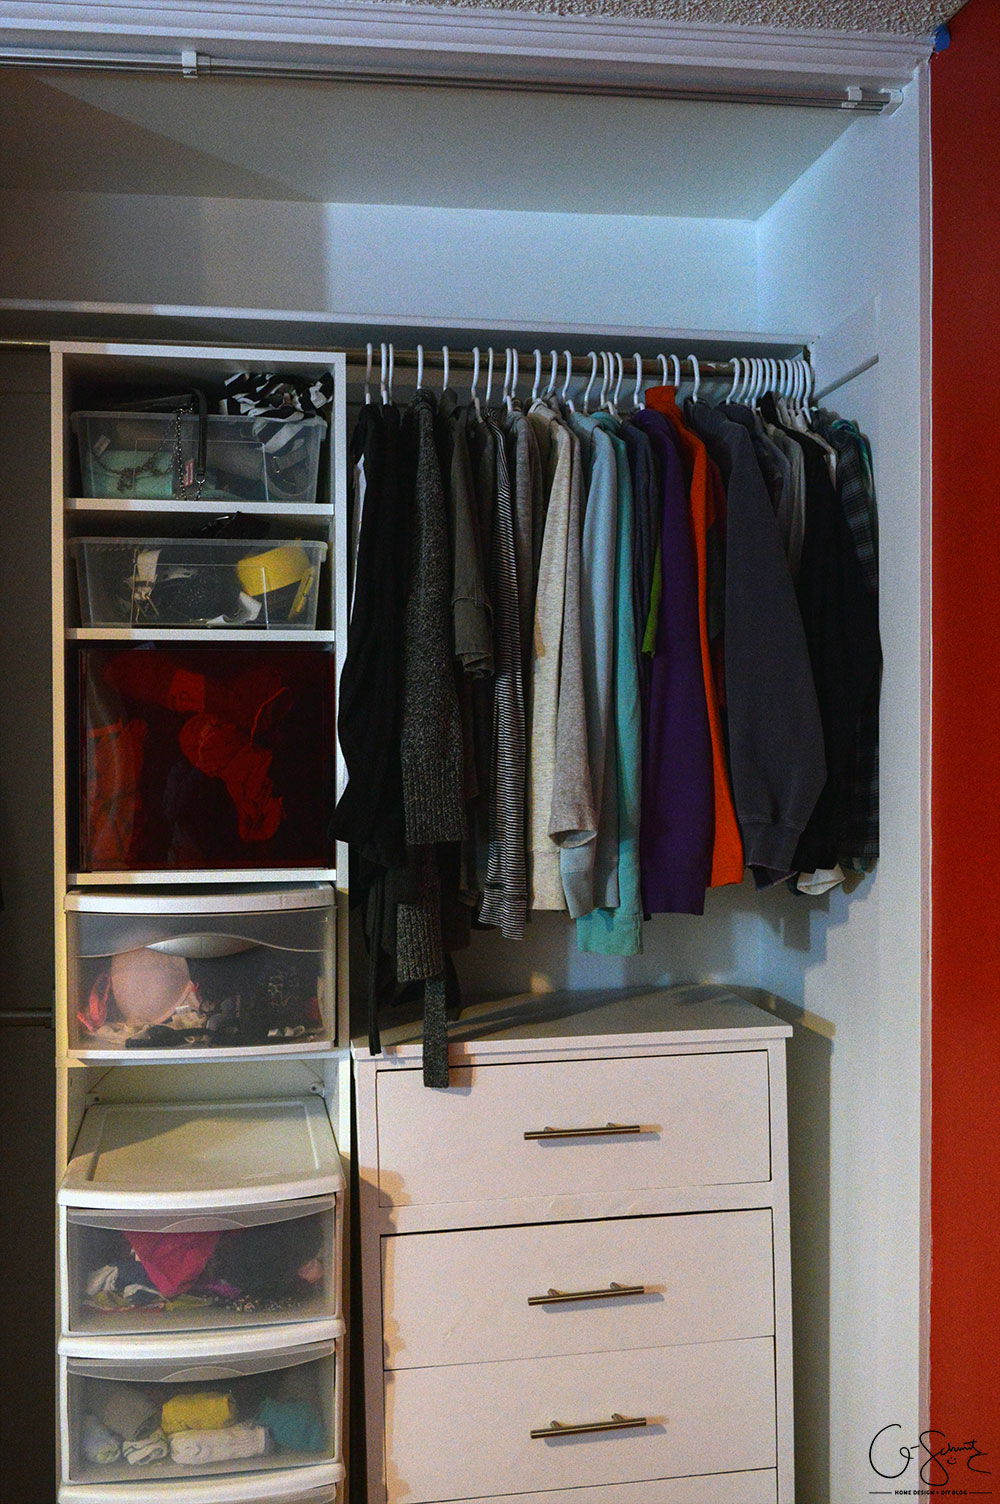 The master closet renovation final reveal shows how we were able to remove the small walls and open up a plain closet - adding more space and organization